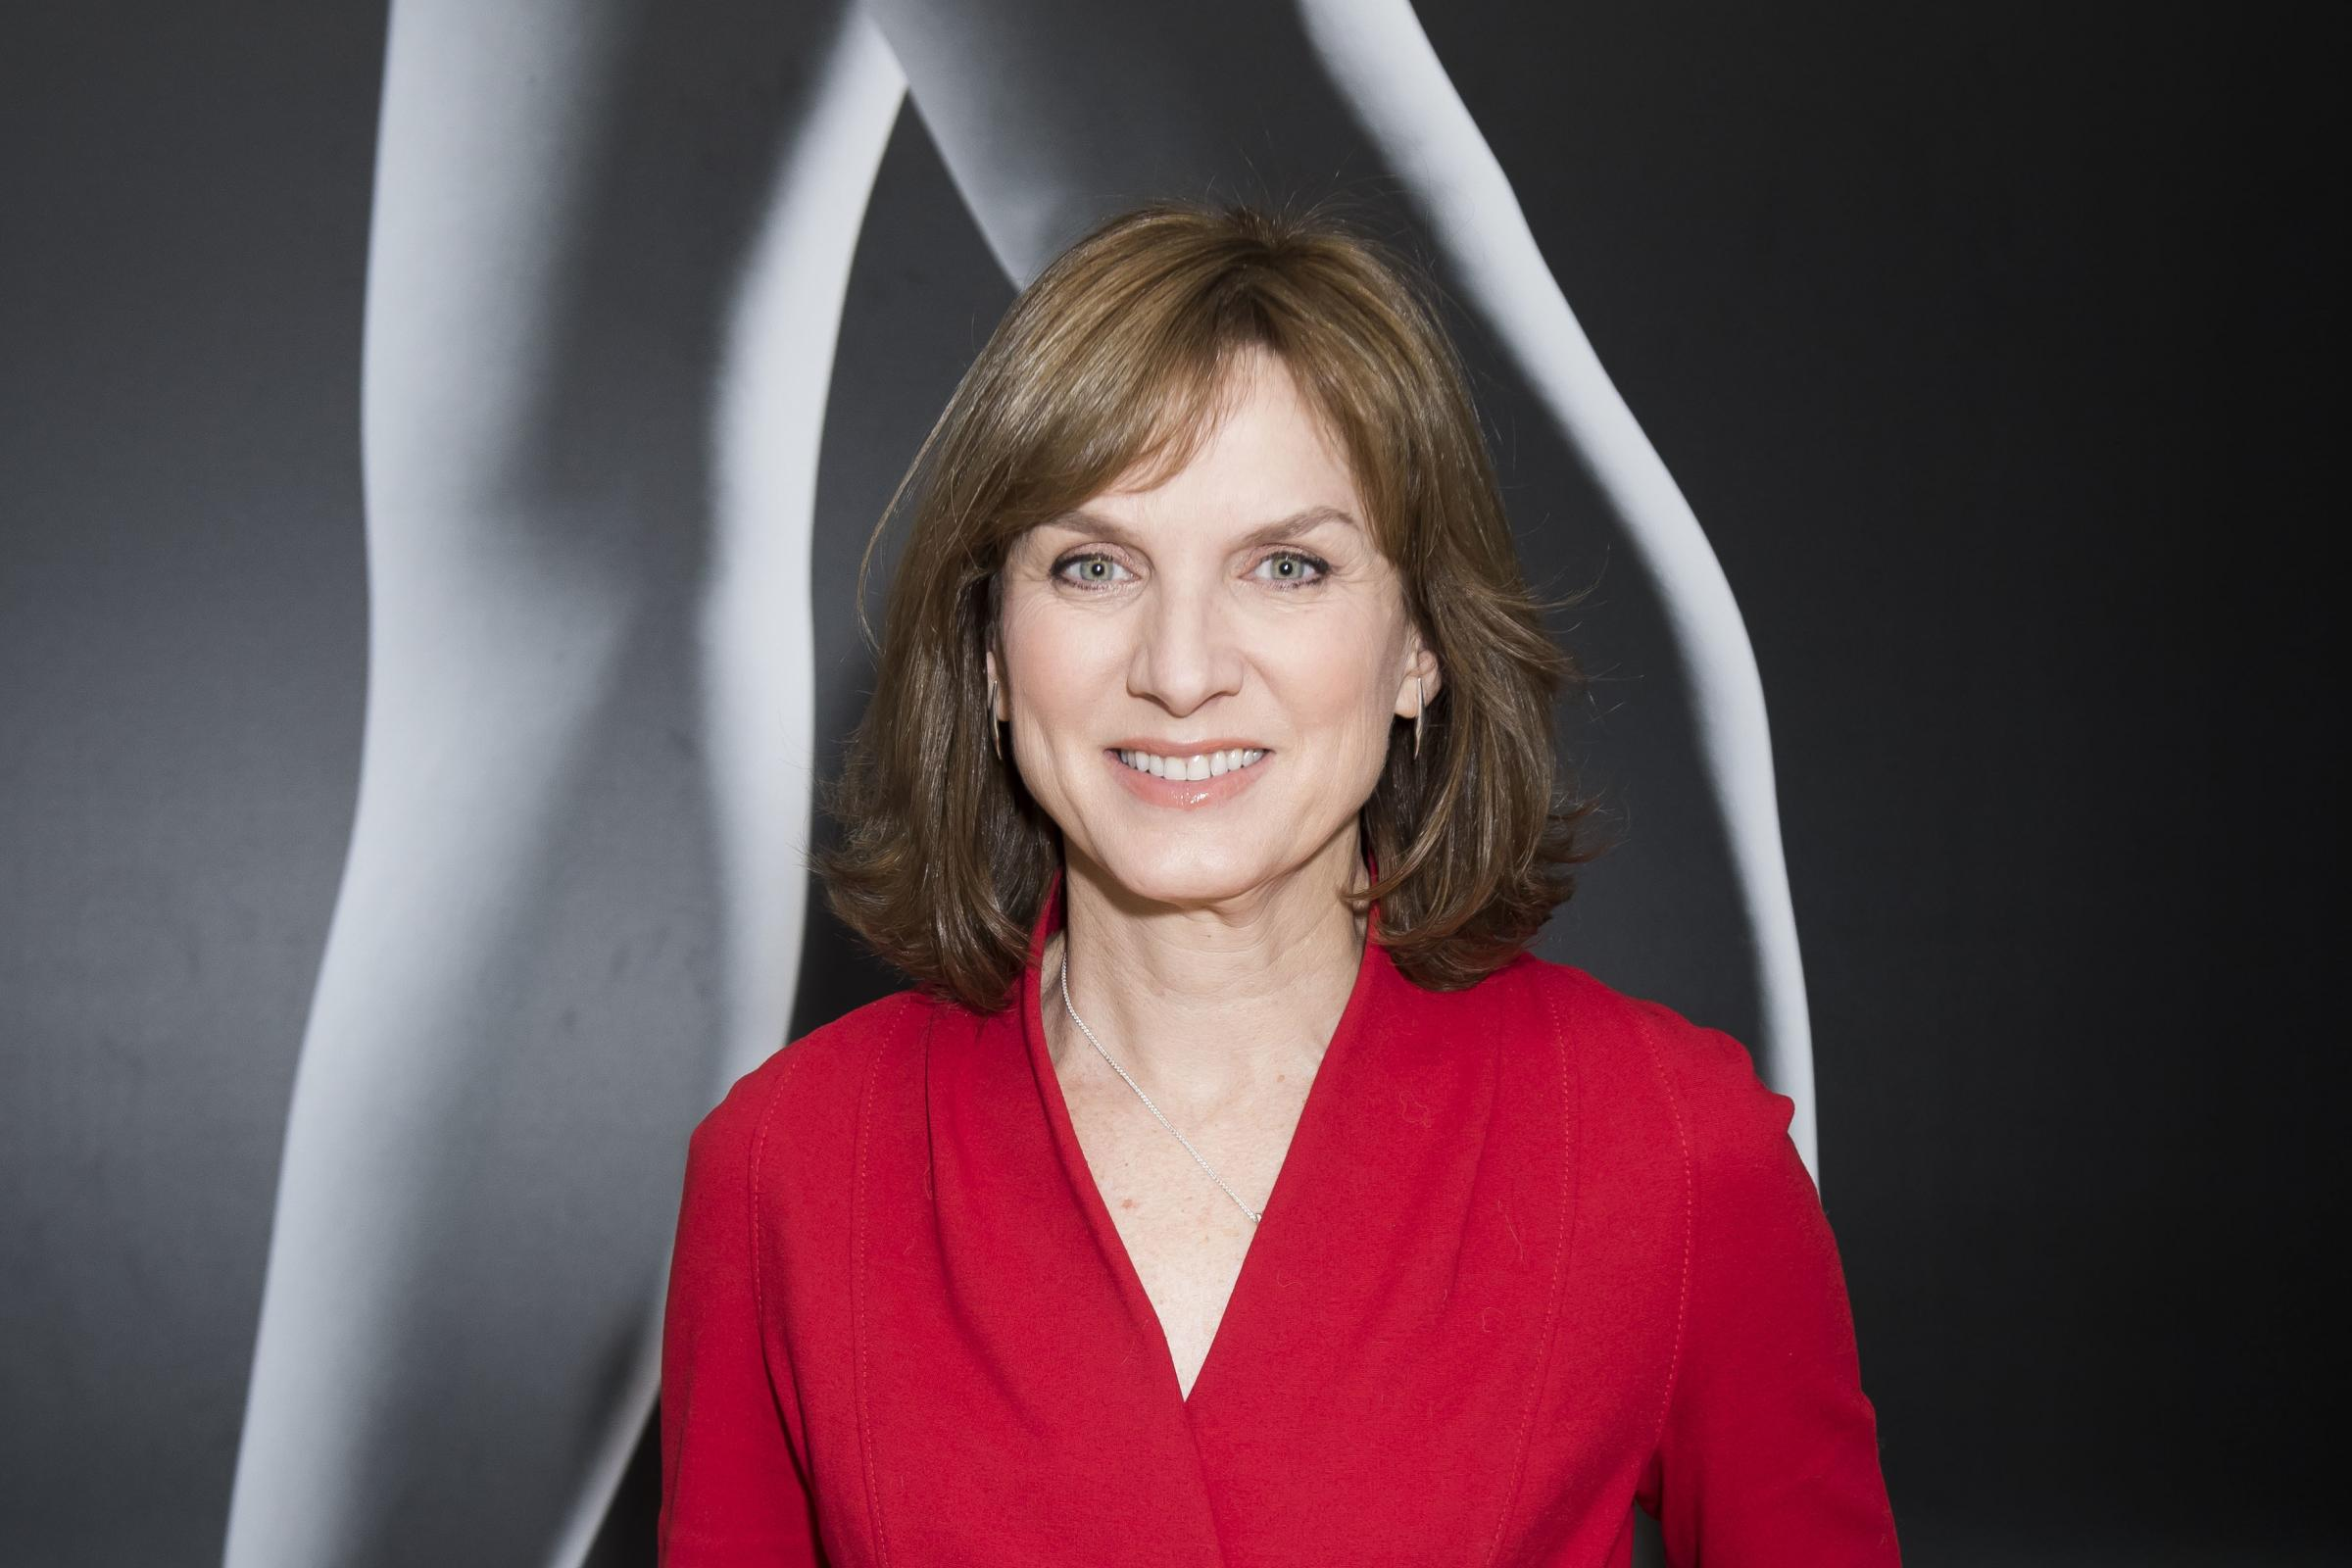 BBC newsreader and Antiques Roadshow presenter Fiona Bruce